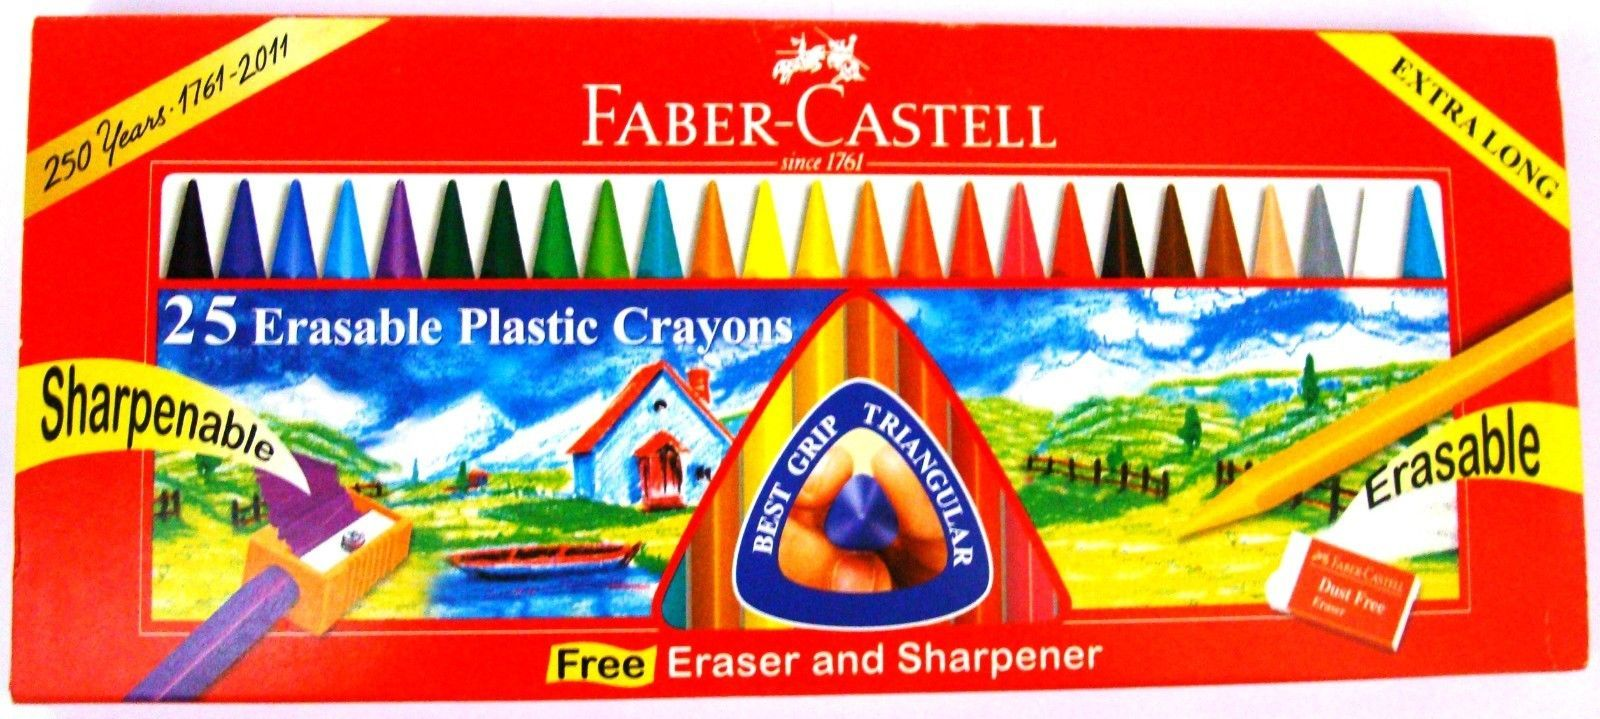 Faber-Castell  25 Erasable Plastic Crayons  Assorted Shades  110 mm each